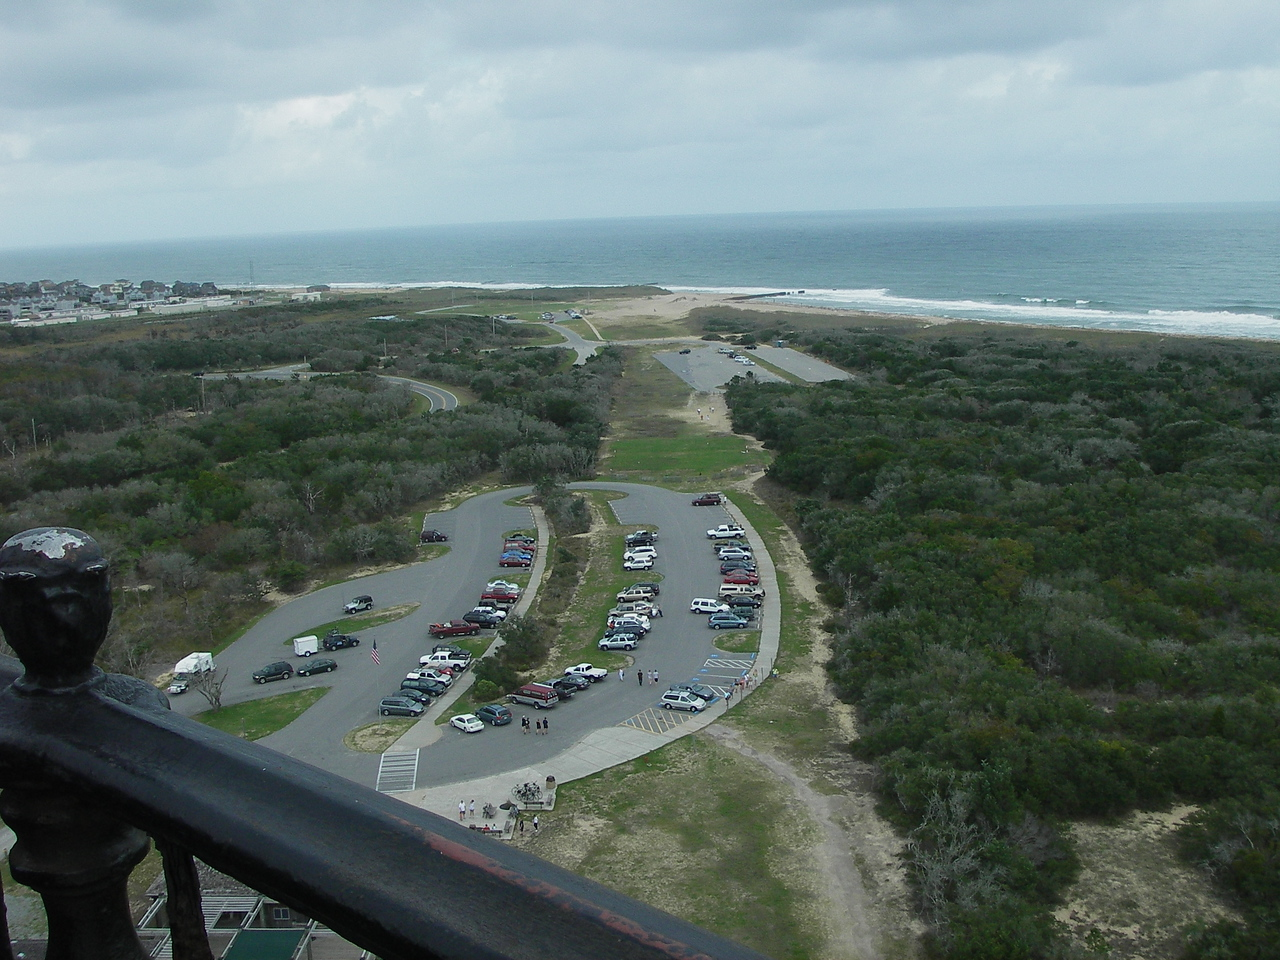 On top of the lighthouse